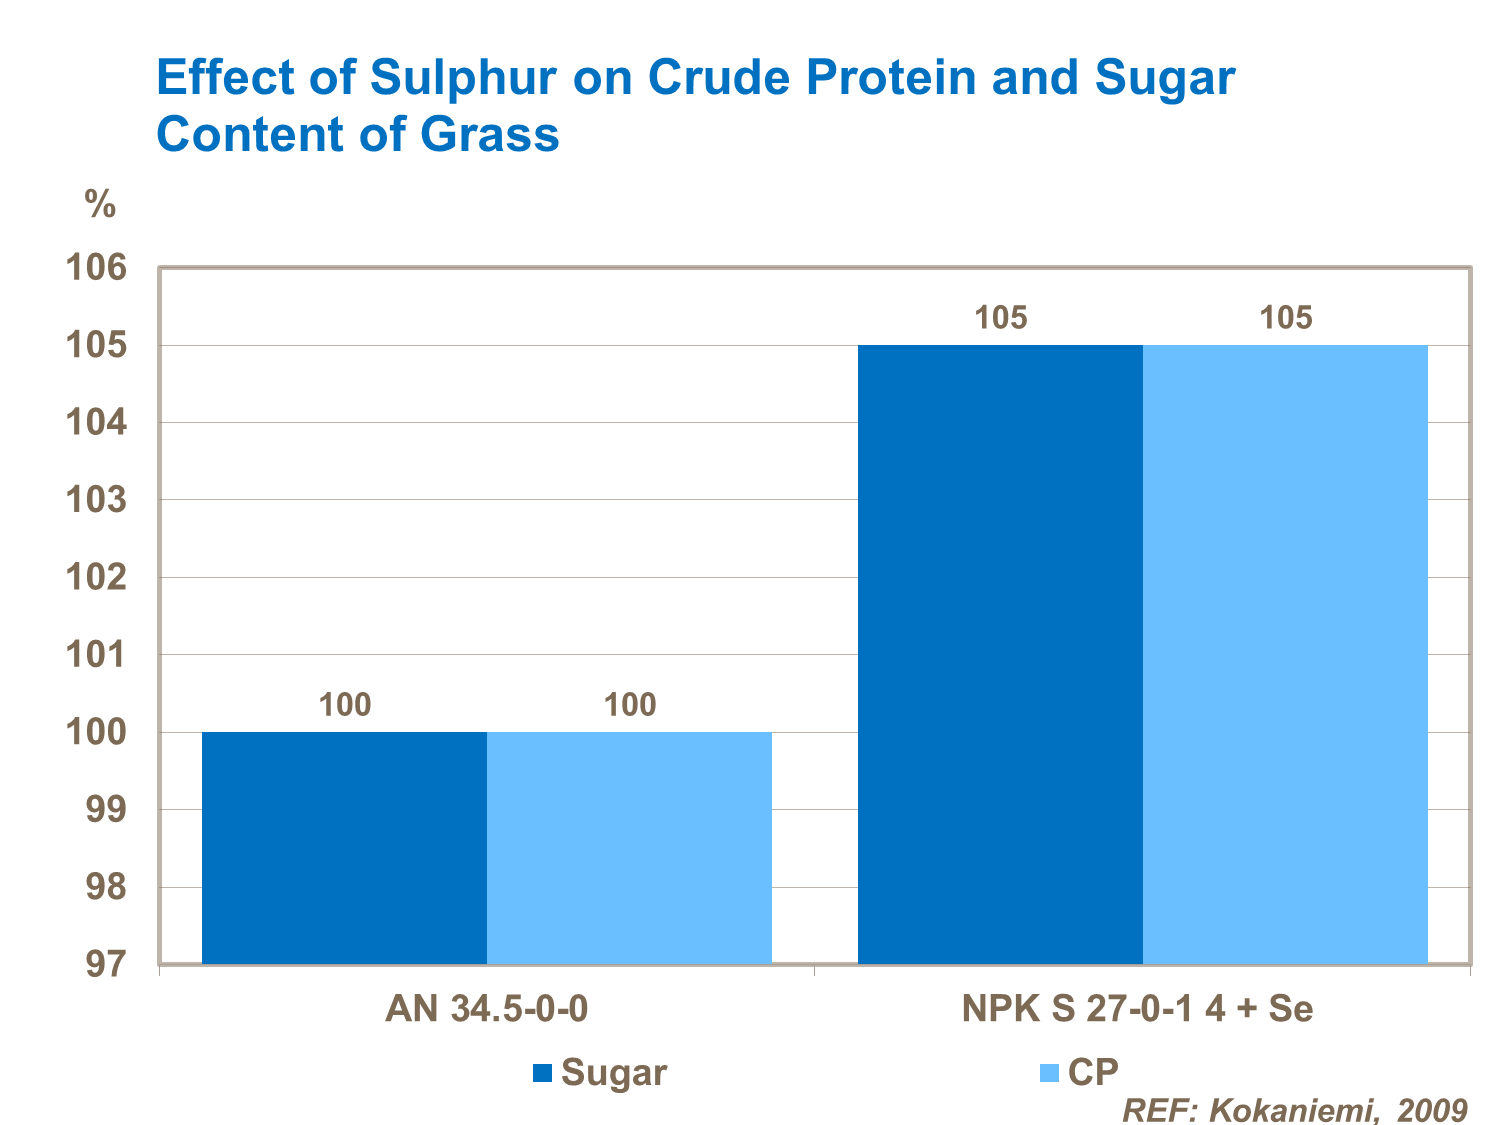 This study from Finland shows the effect of sulphur on increasing crude protein and sugar content of grass.